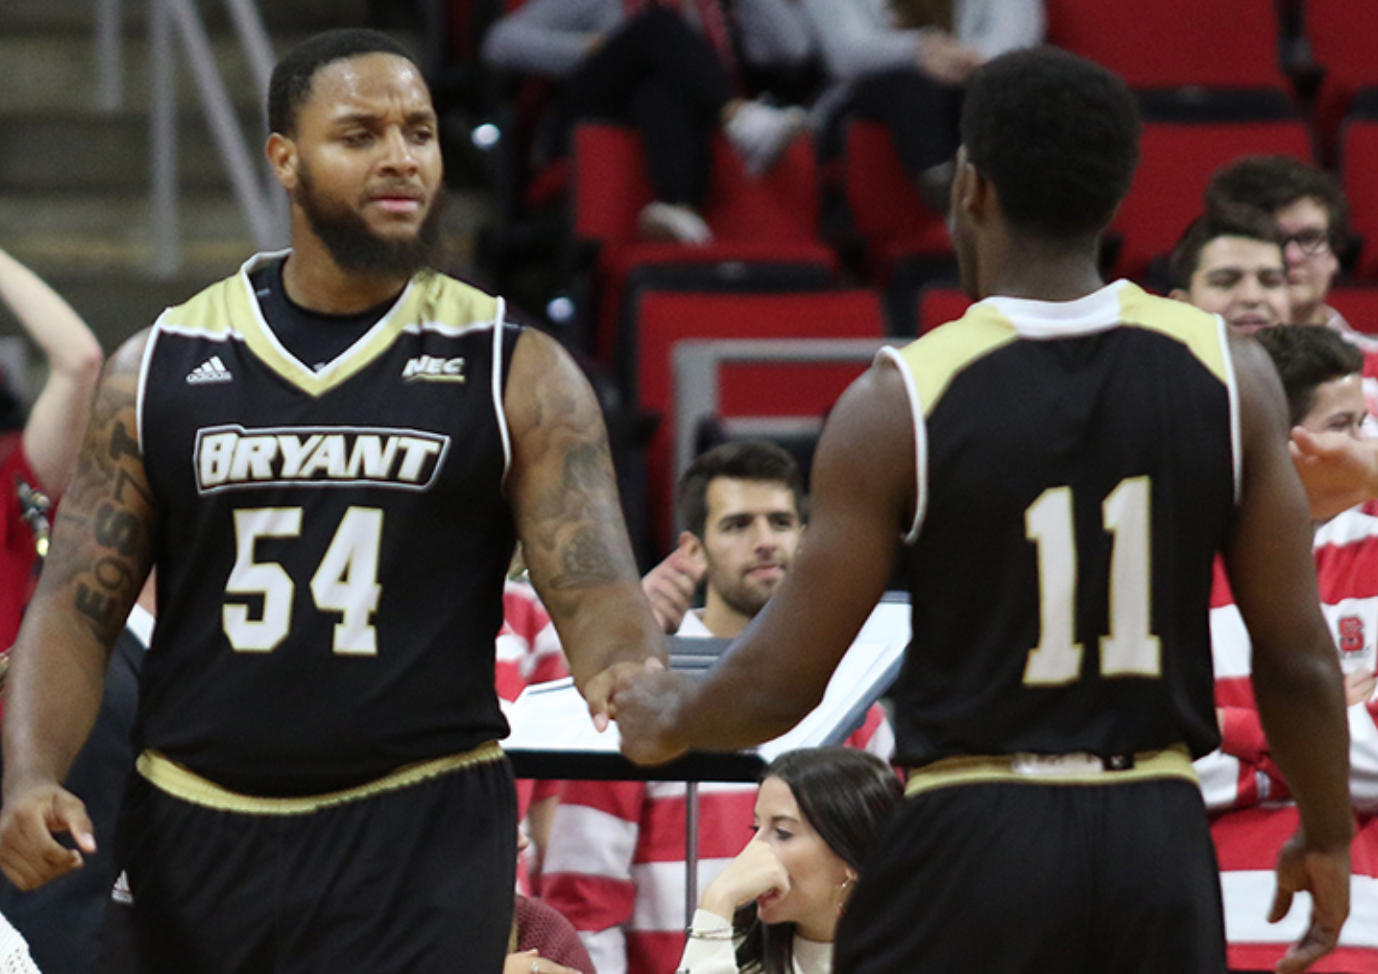 GoLocalProv | Bryant Basketball Falls to N.C. State 95-72